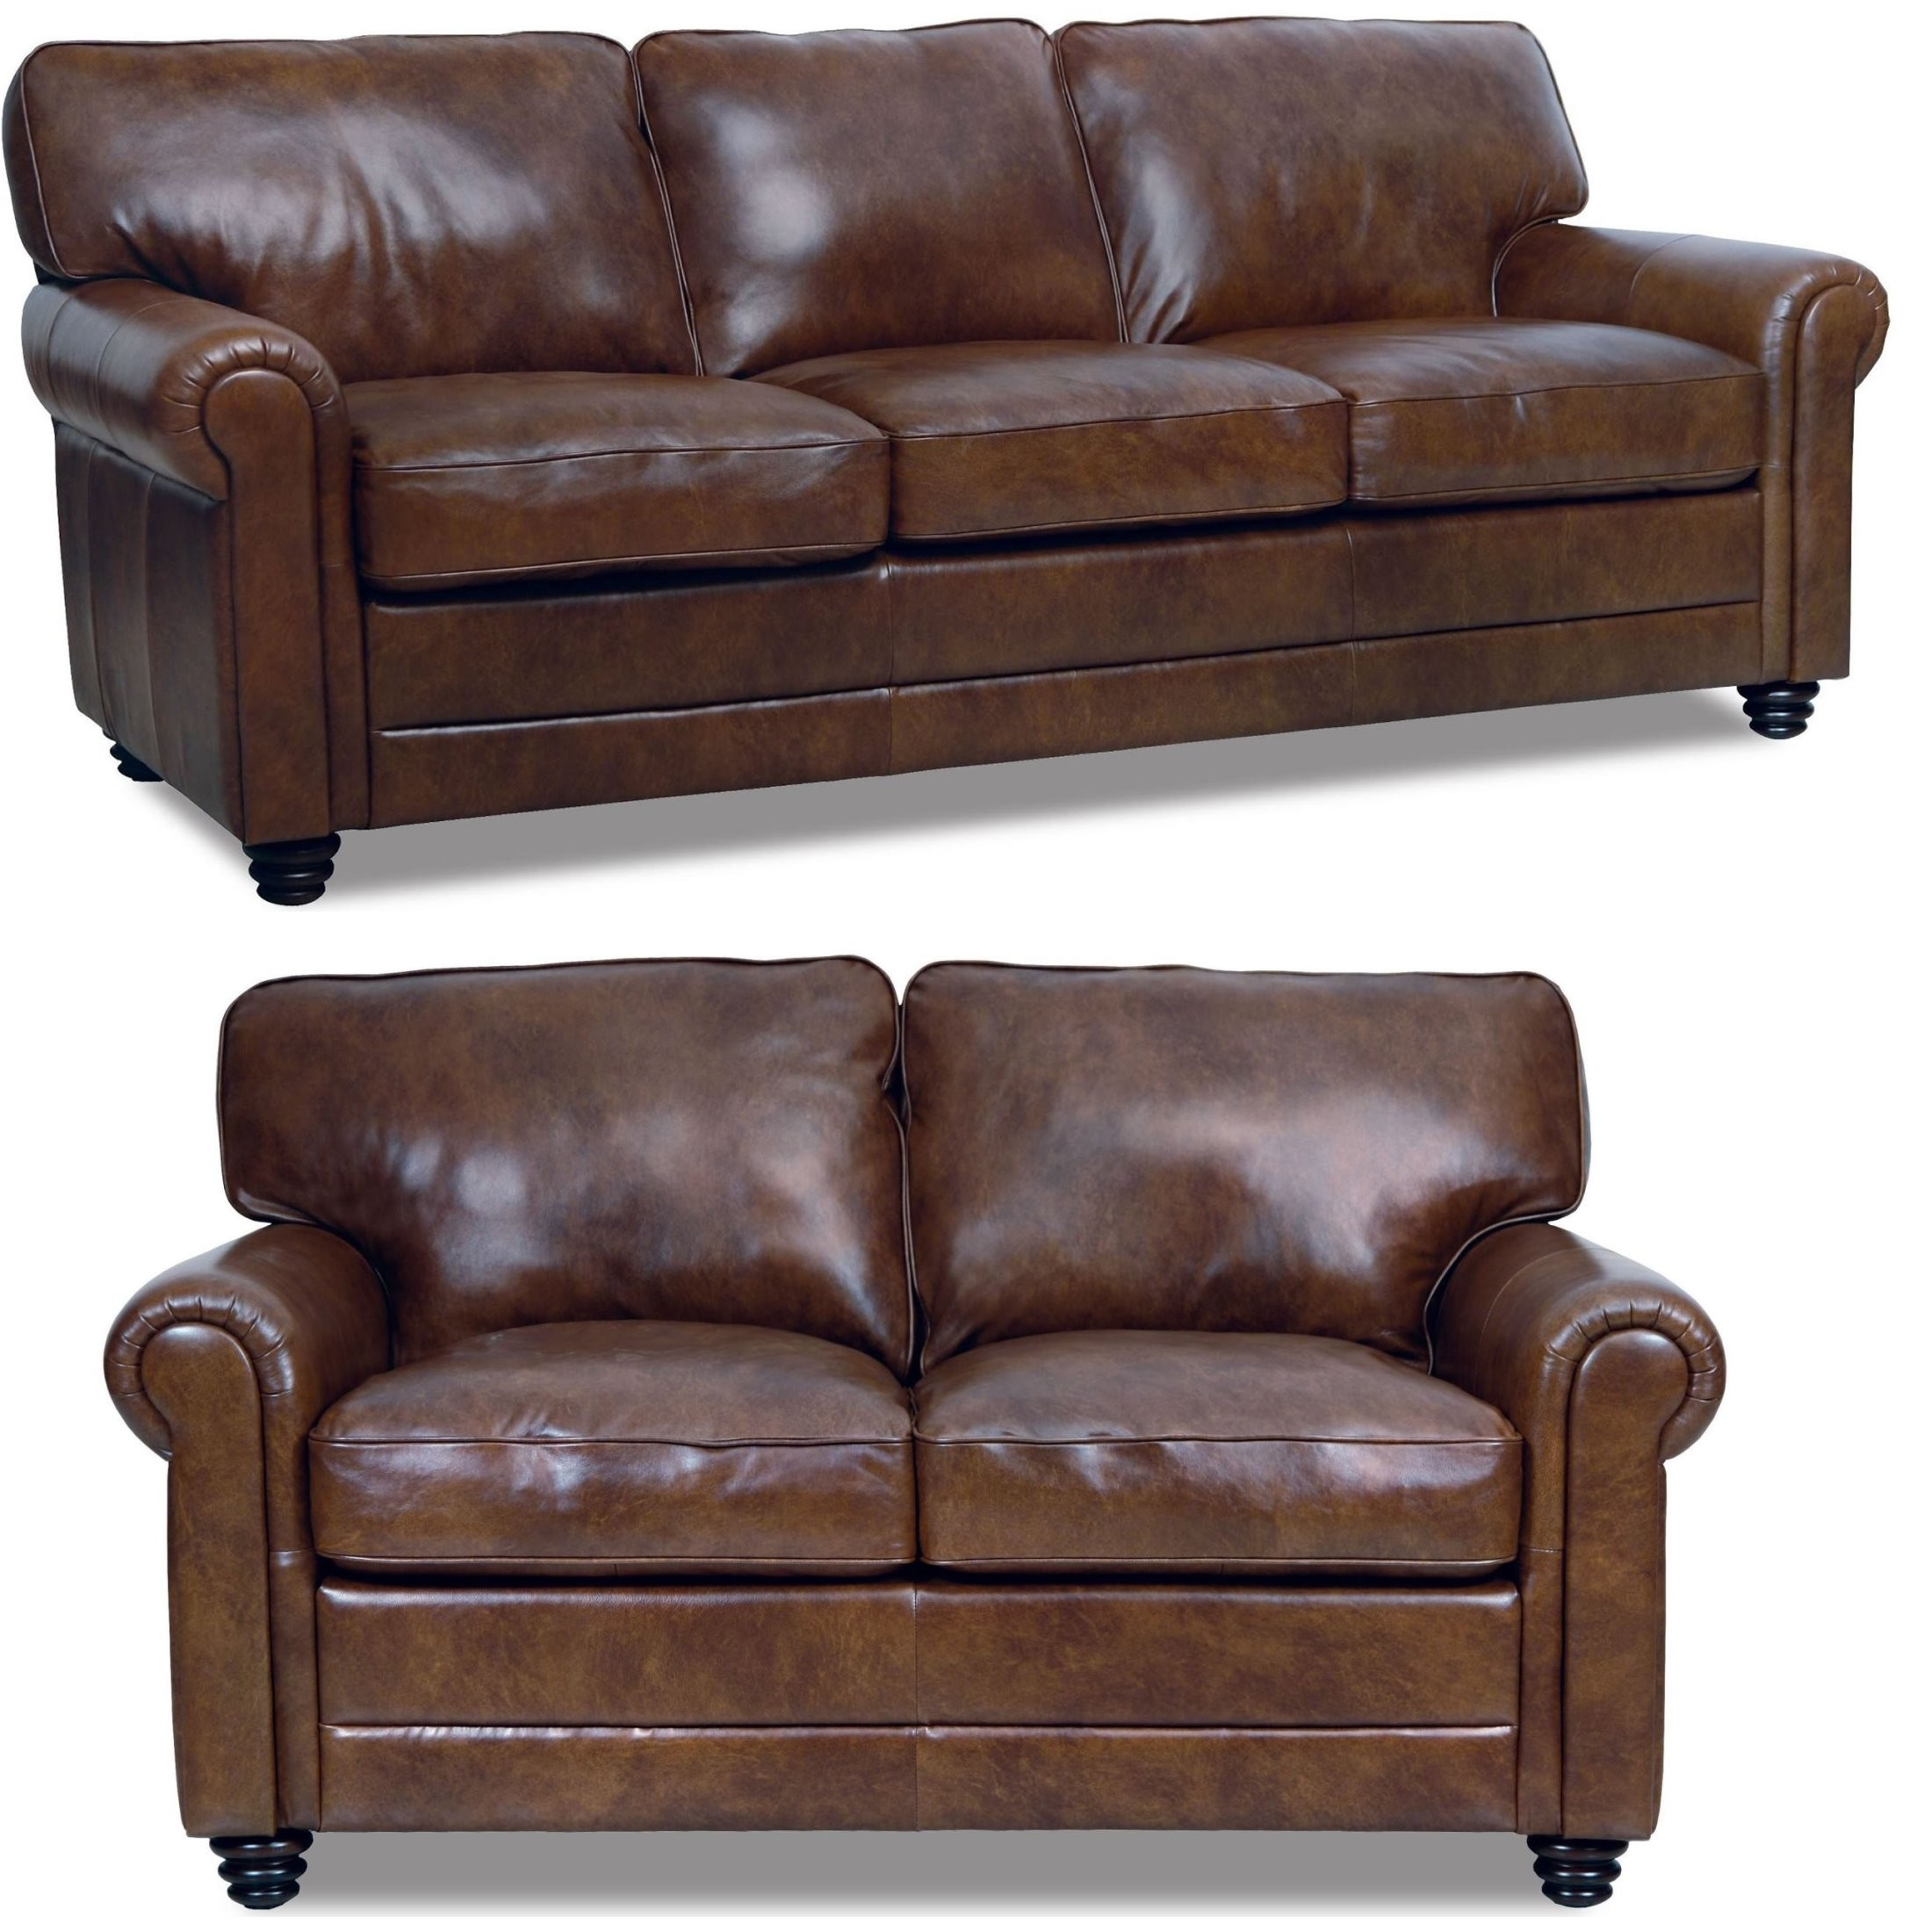 Andrew Italian Leather Living Room Set From Luke Leather (Andrew Within Andrew Leather Sofa Chairs (Image 6 of 25)